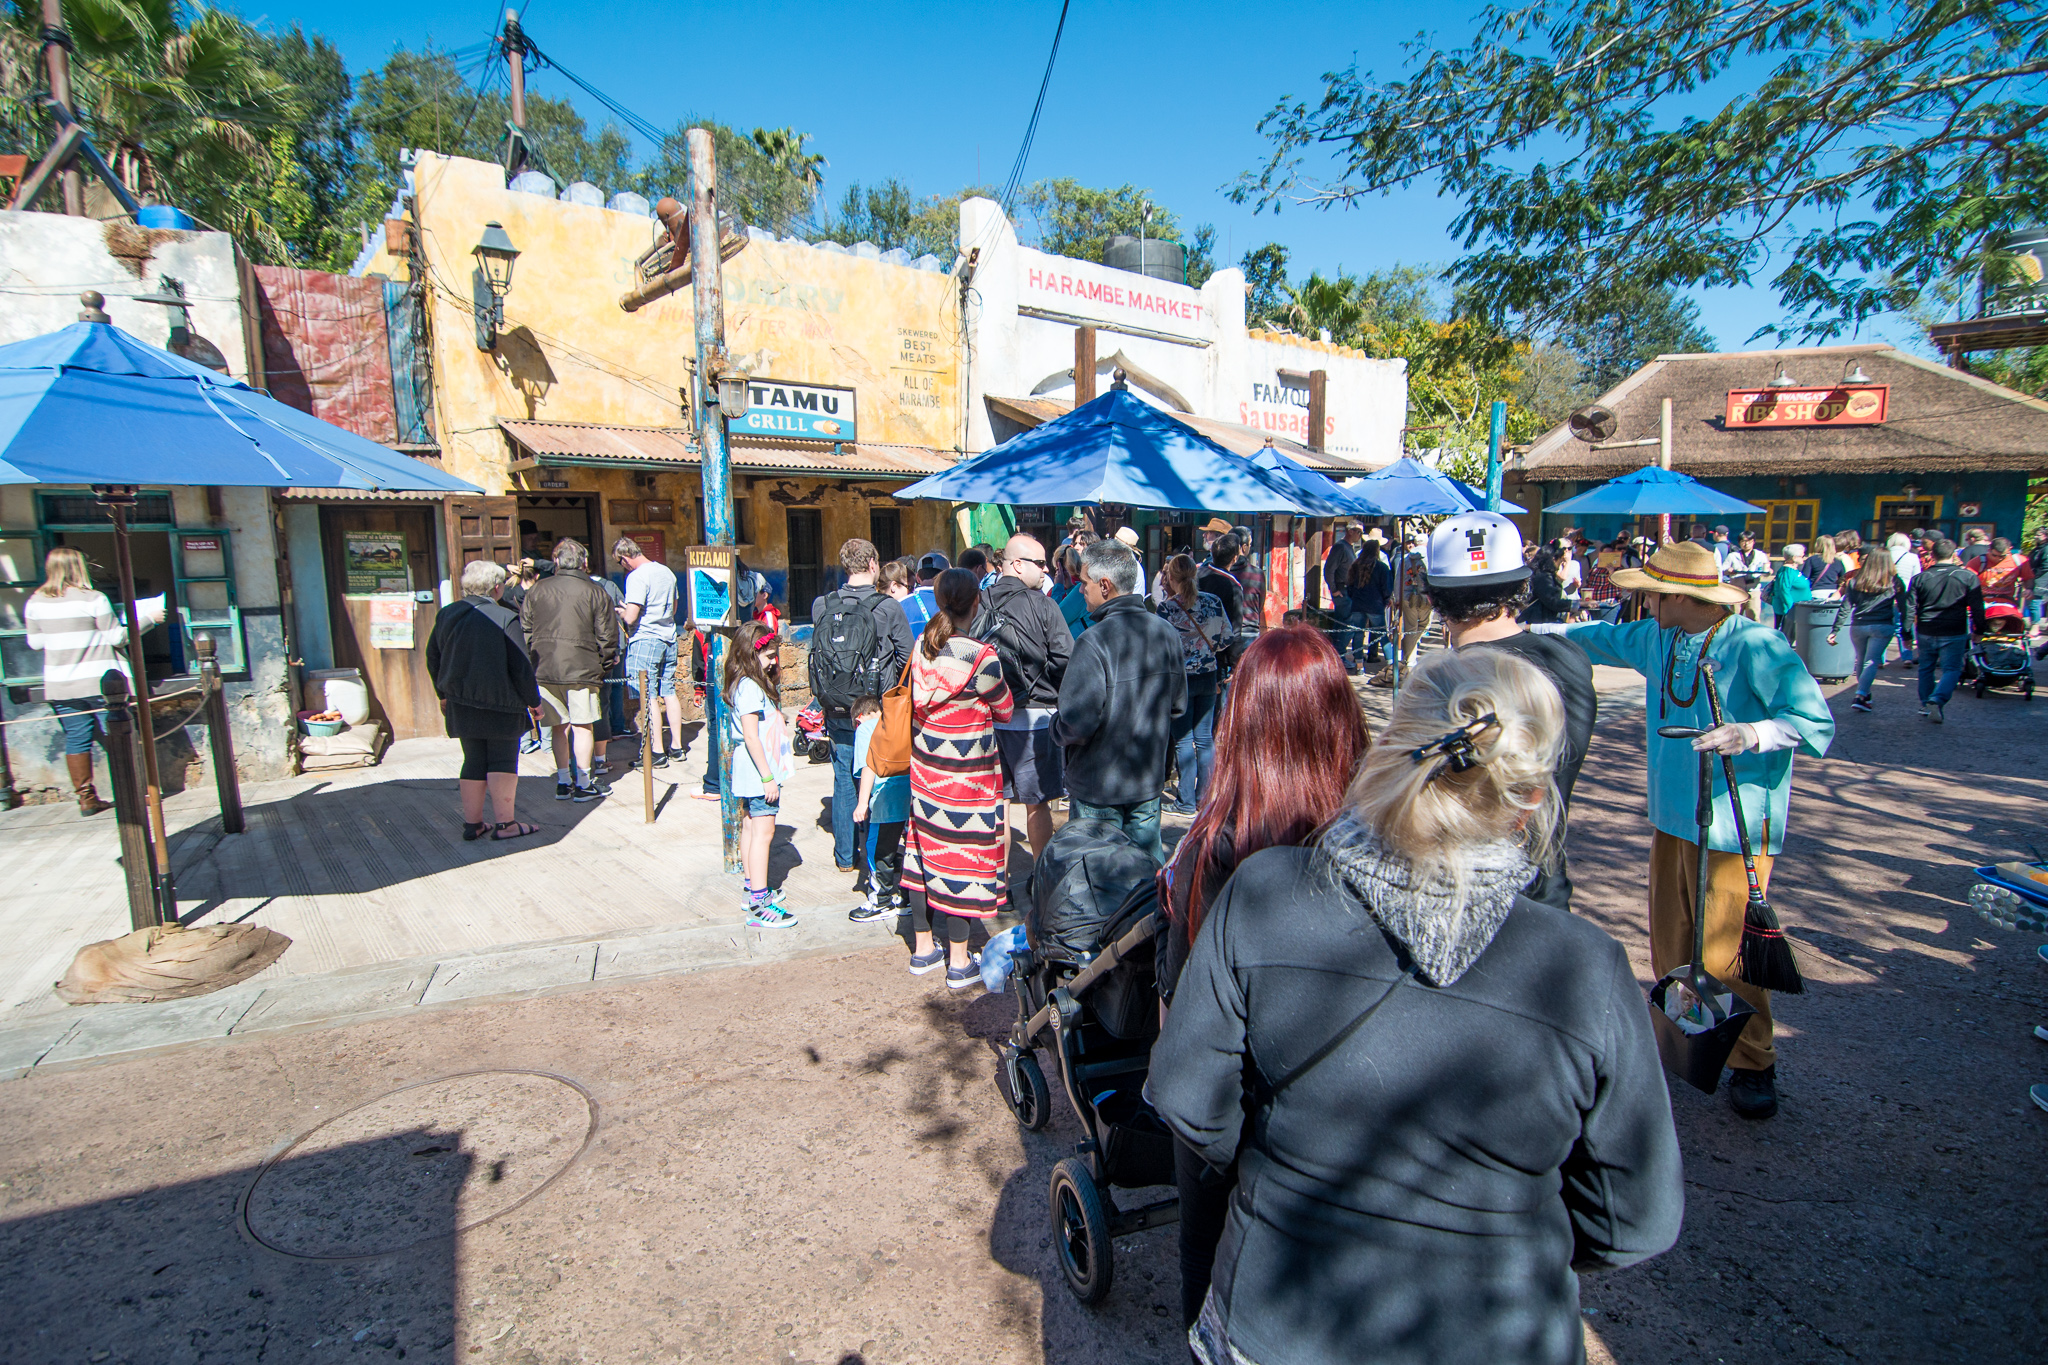 Long lunch lines at Harambe Market